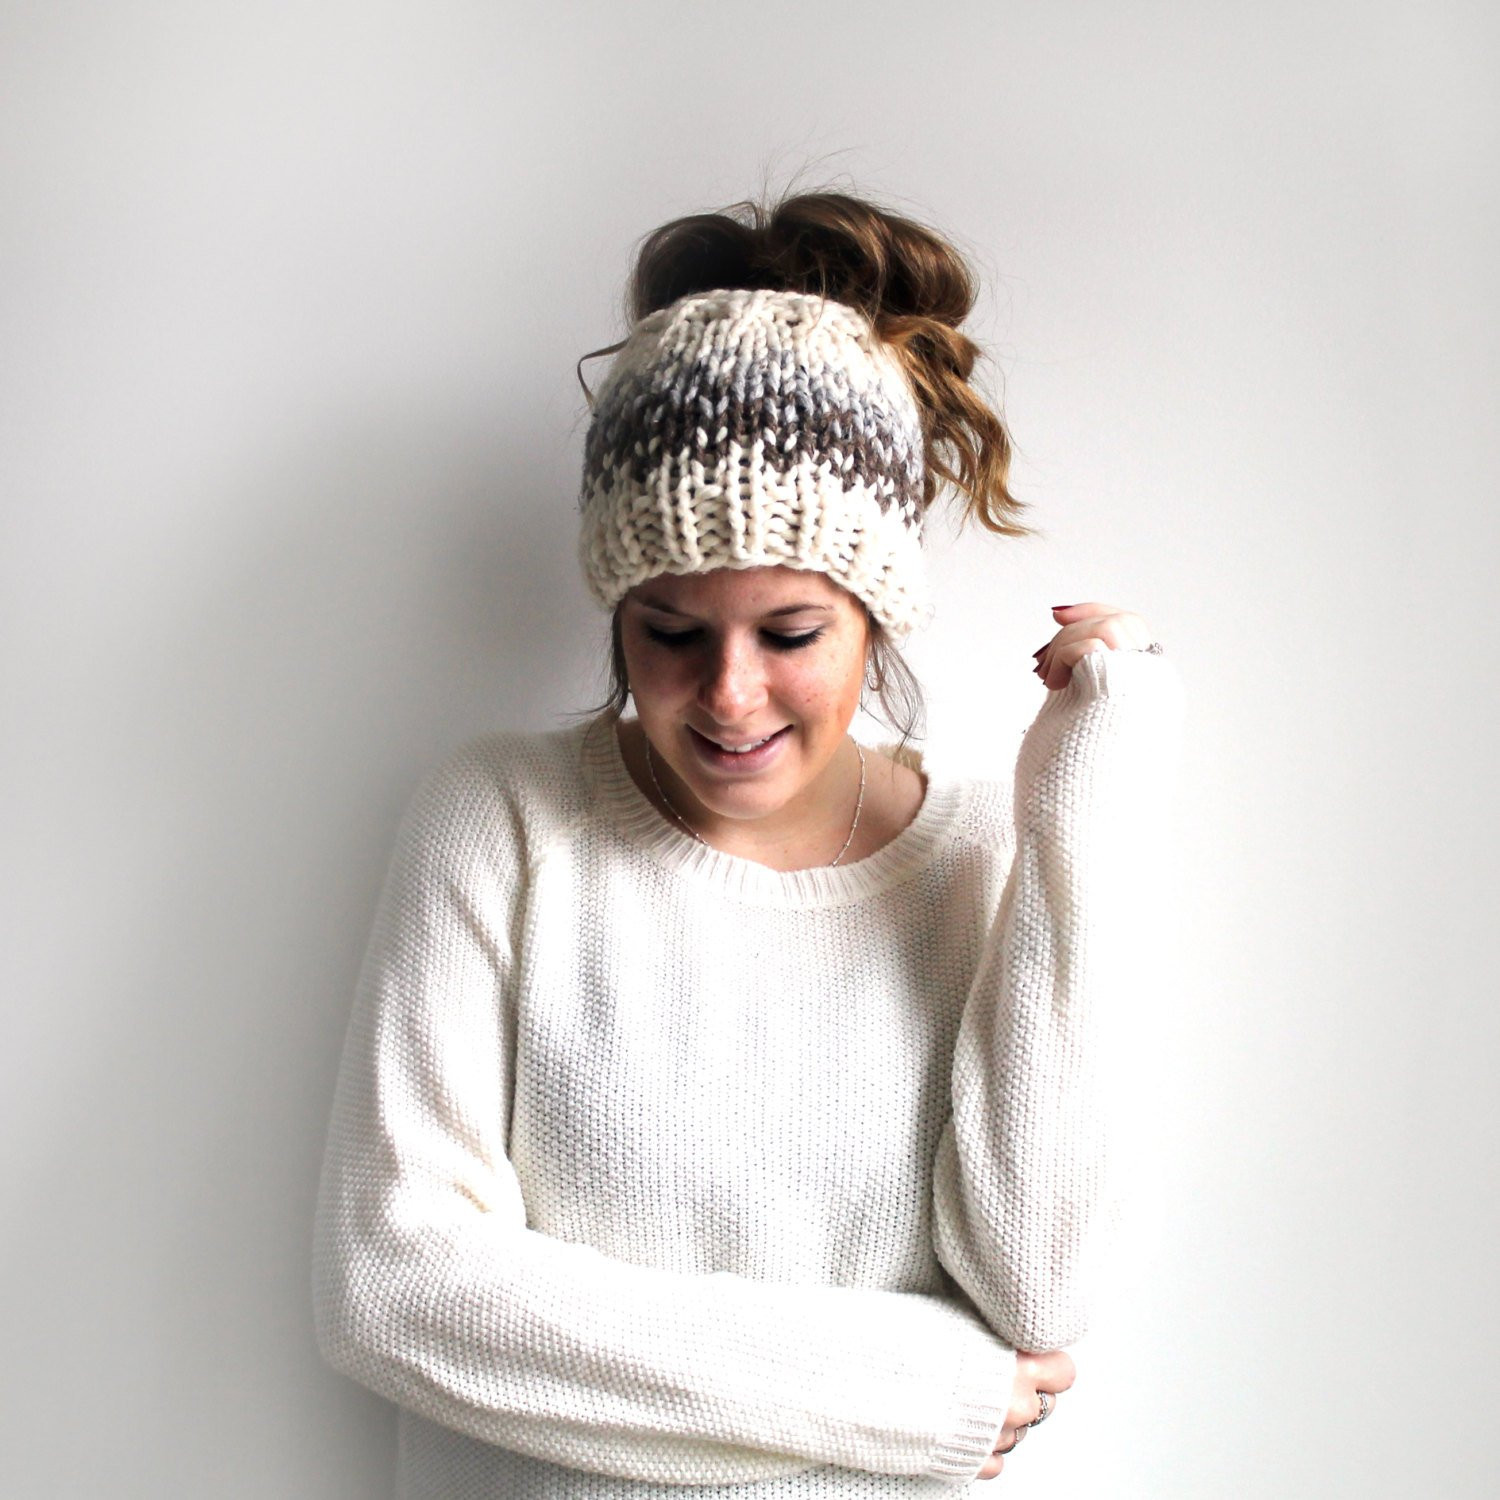 Awesome Messy Bun Hat Knit Ponytail Hat Pony Tail Headband by Knitted Messy Bun Hat Of Luxury 50 Models Knitted Messy Bun Hat